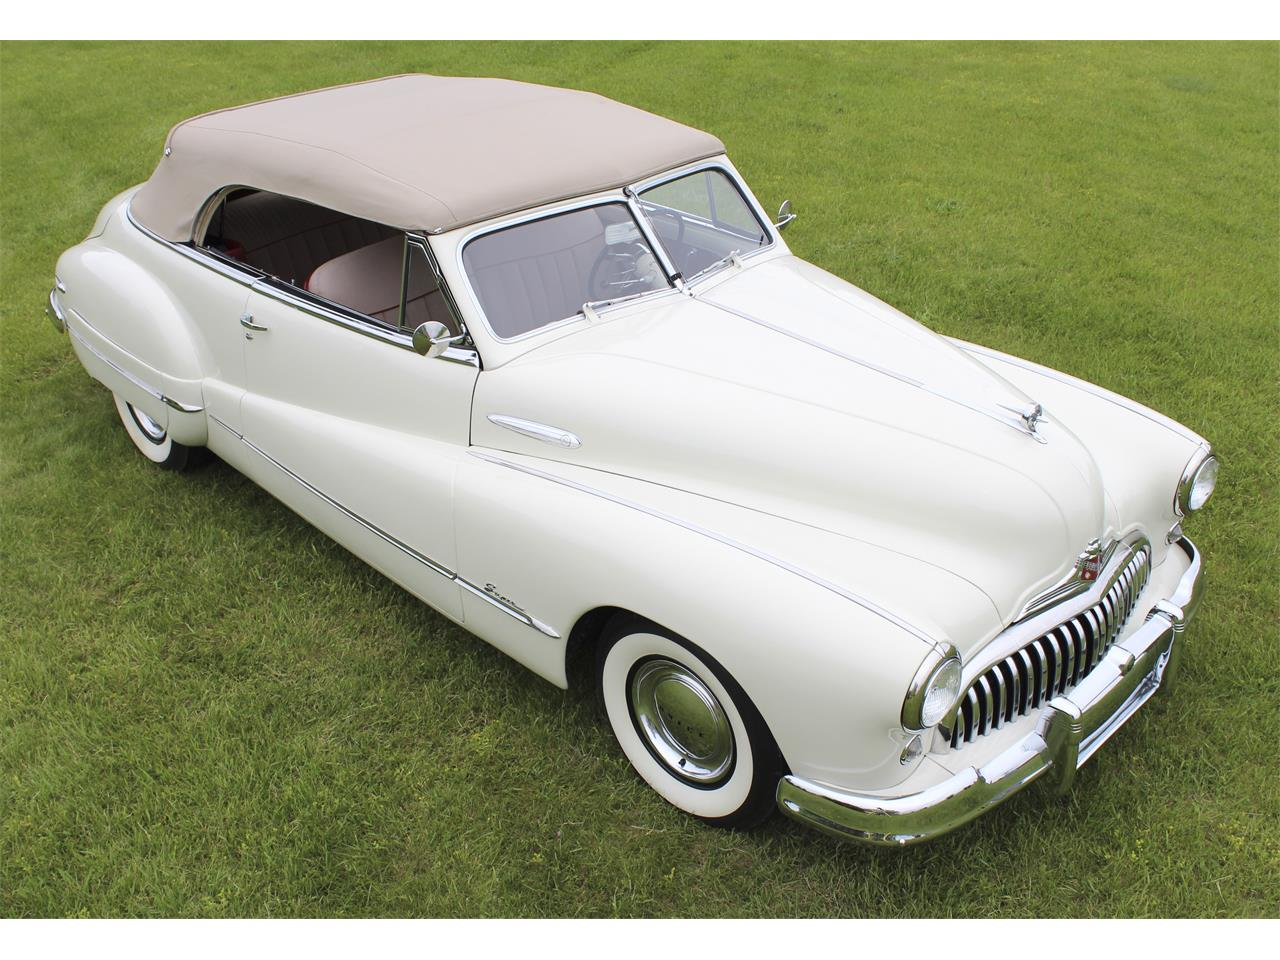 Large Picture of '48 Buick Convertible located in Michigan - $55,000.00 - QJJ6